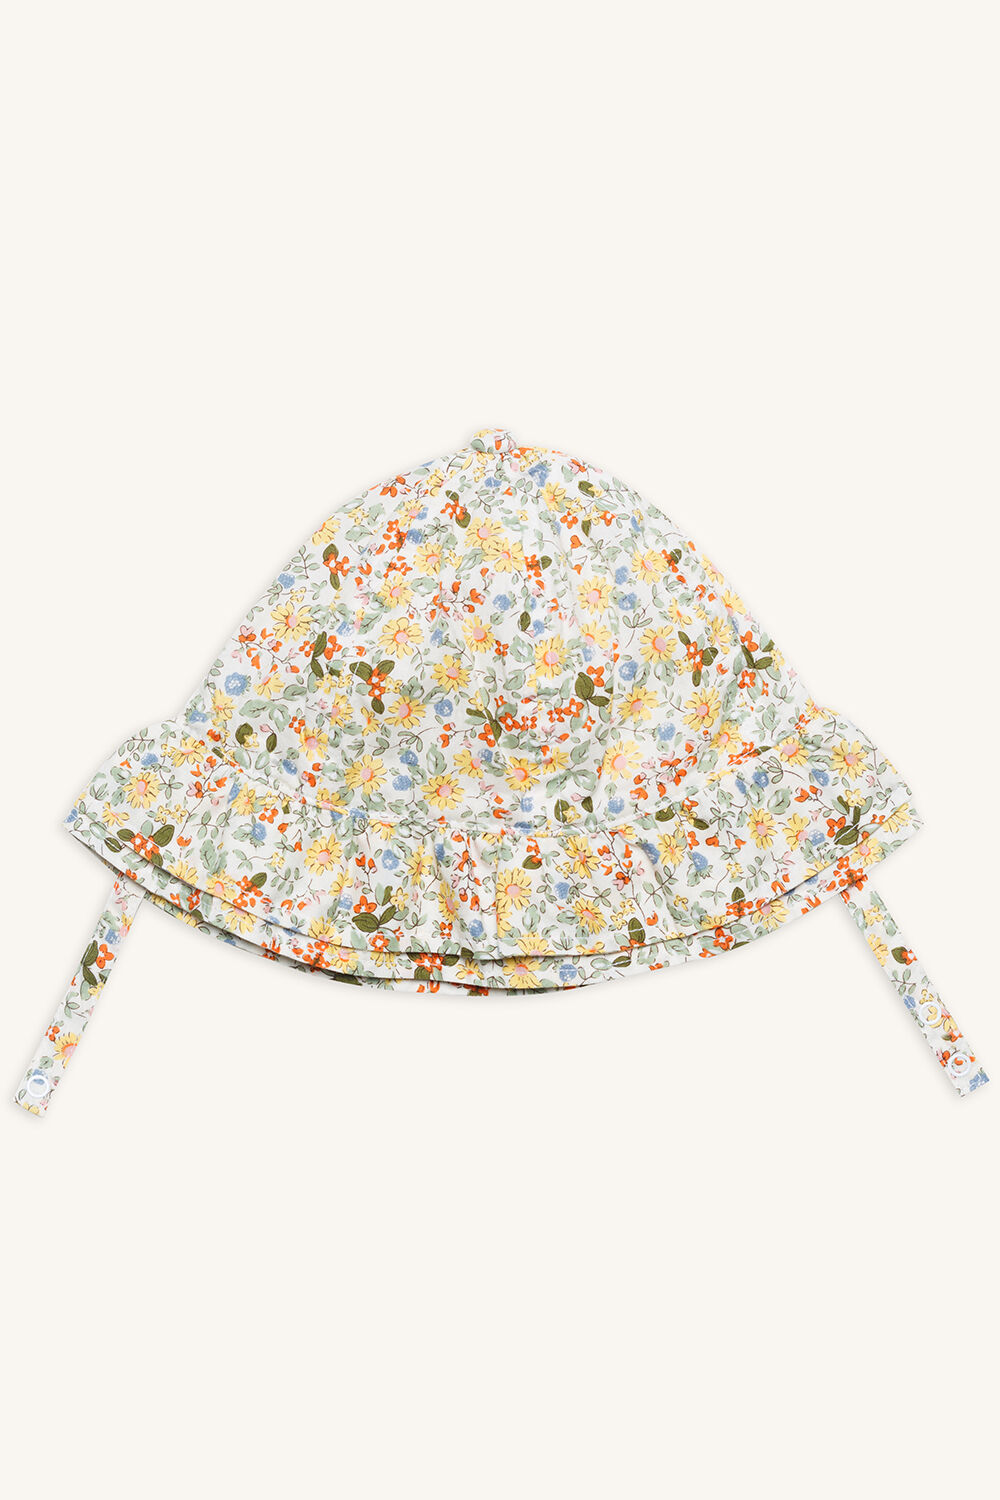 DITSY BABY BONNET in colour YELLOW CREAM aed5e3147b0